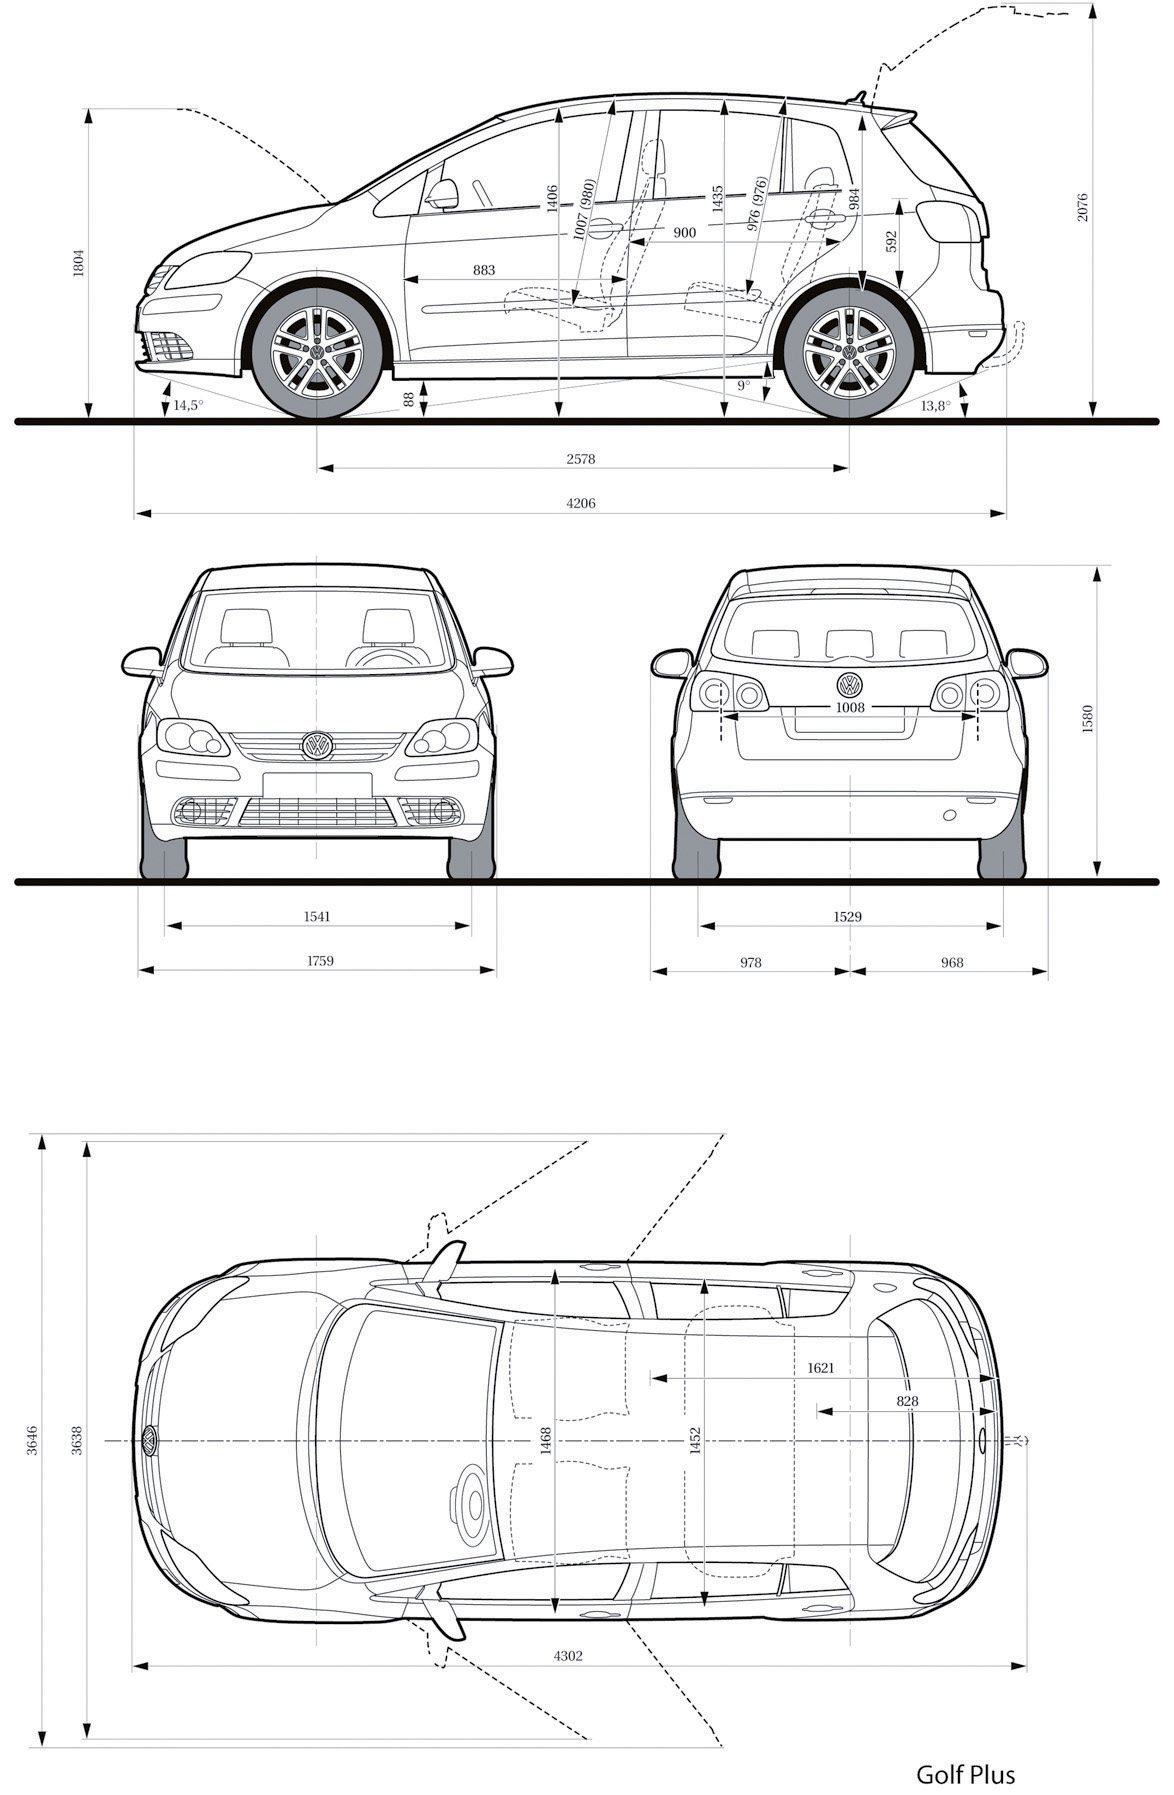 volkswagen golf plus 2005 blueprint download free blueprint for 3d modeling. Black Bedroom Furniture Sets. Home Design Ideas